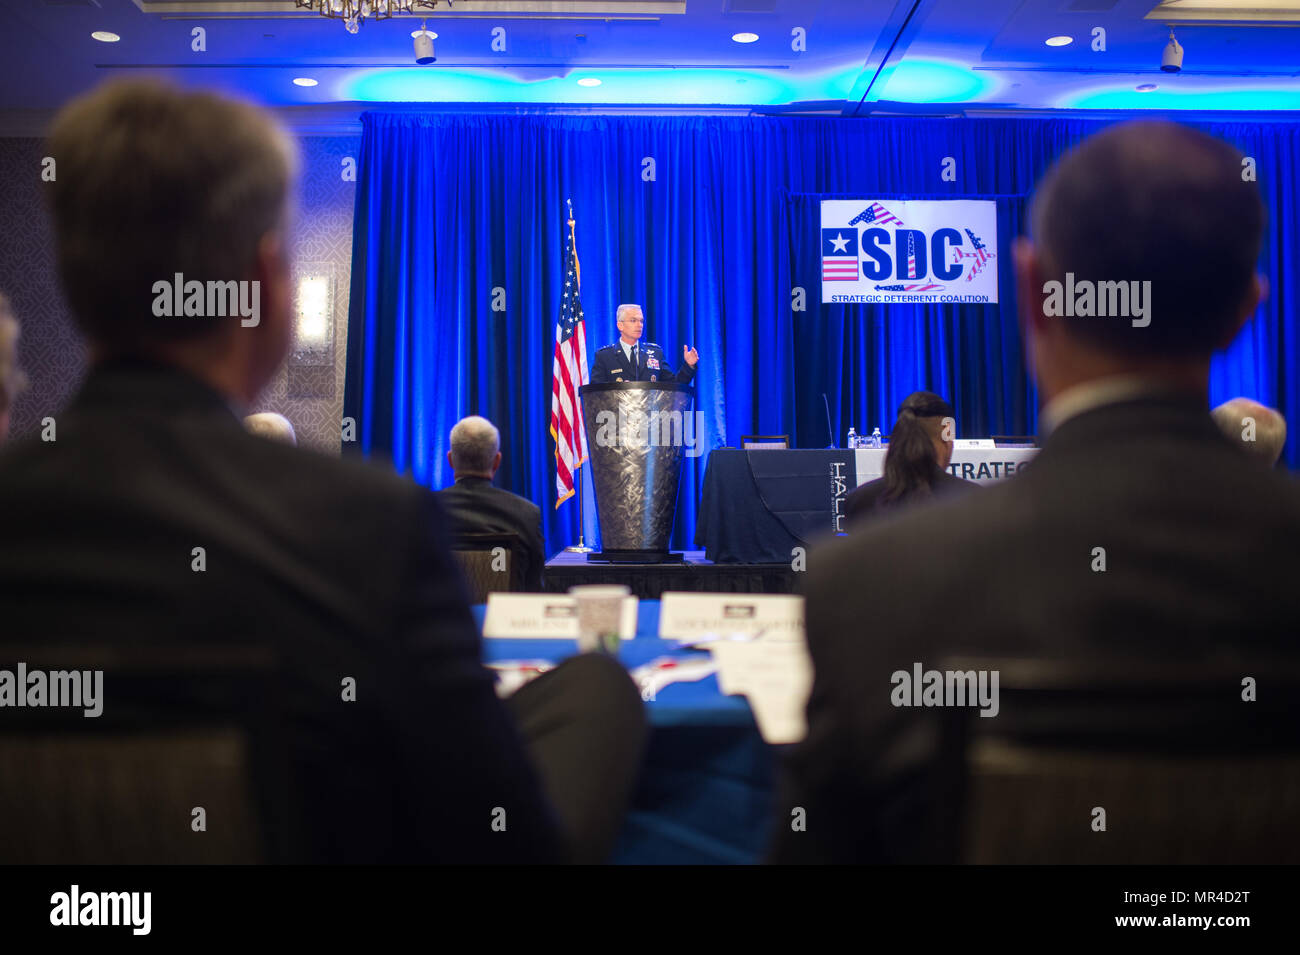 U.S. Air Force Gen. Paul J. Selva, Vice Chairman of the Joint Chiefs of Staff, delivers a keynote speech during the Strategic Deterrent Coalition (SDC) Symposium 2017 in Arlington, Va., May 9, 2017. The SDC is a nonprofit, nonpartisan community-based organization formed to support the Nuclear Triad by providing educational information on the importance to our nation of maintaining a safe, secure, and effective nuclear deterrent. (DoD Photo by U.S. Army Sgt. James K. McCann) - Stock Image